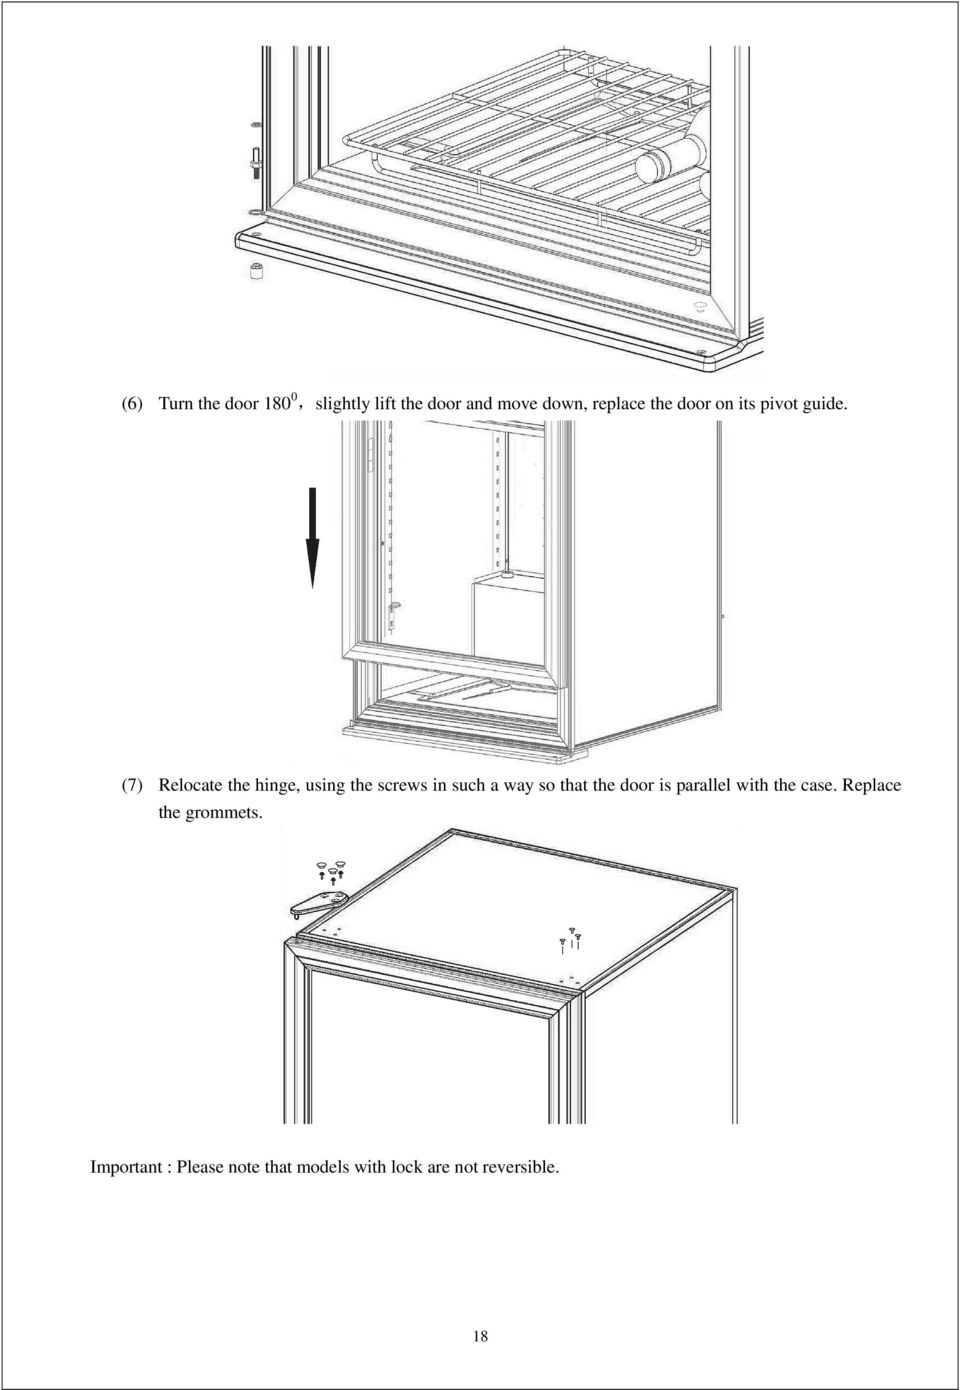 (7) Relocate the hinge, using the screws in such a way so that the door